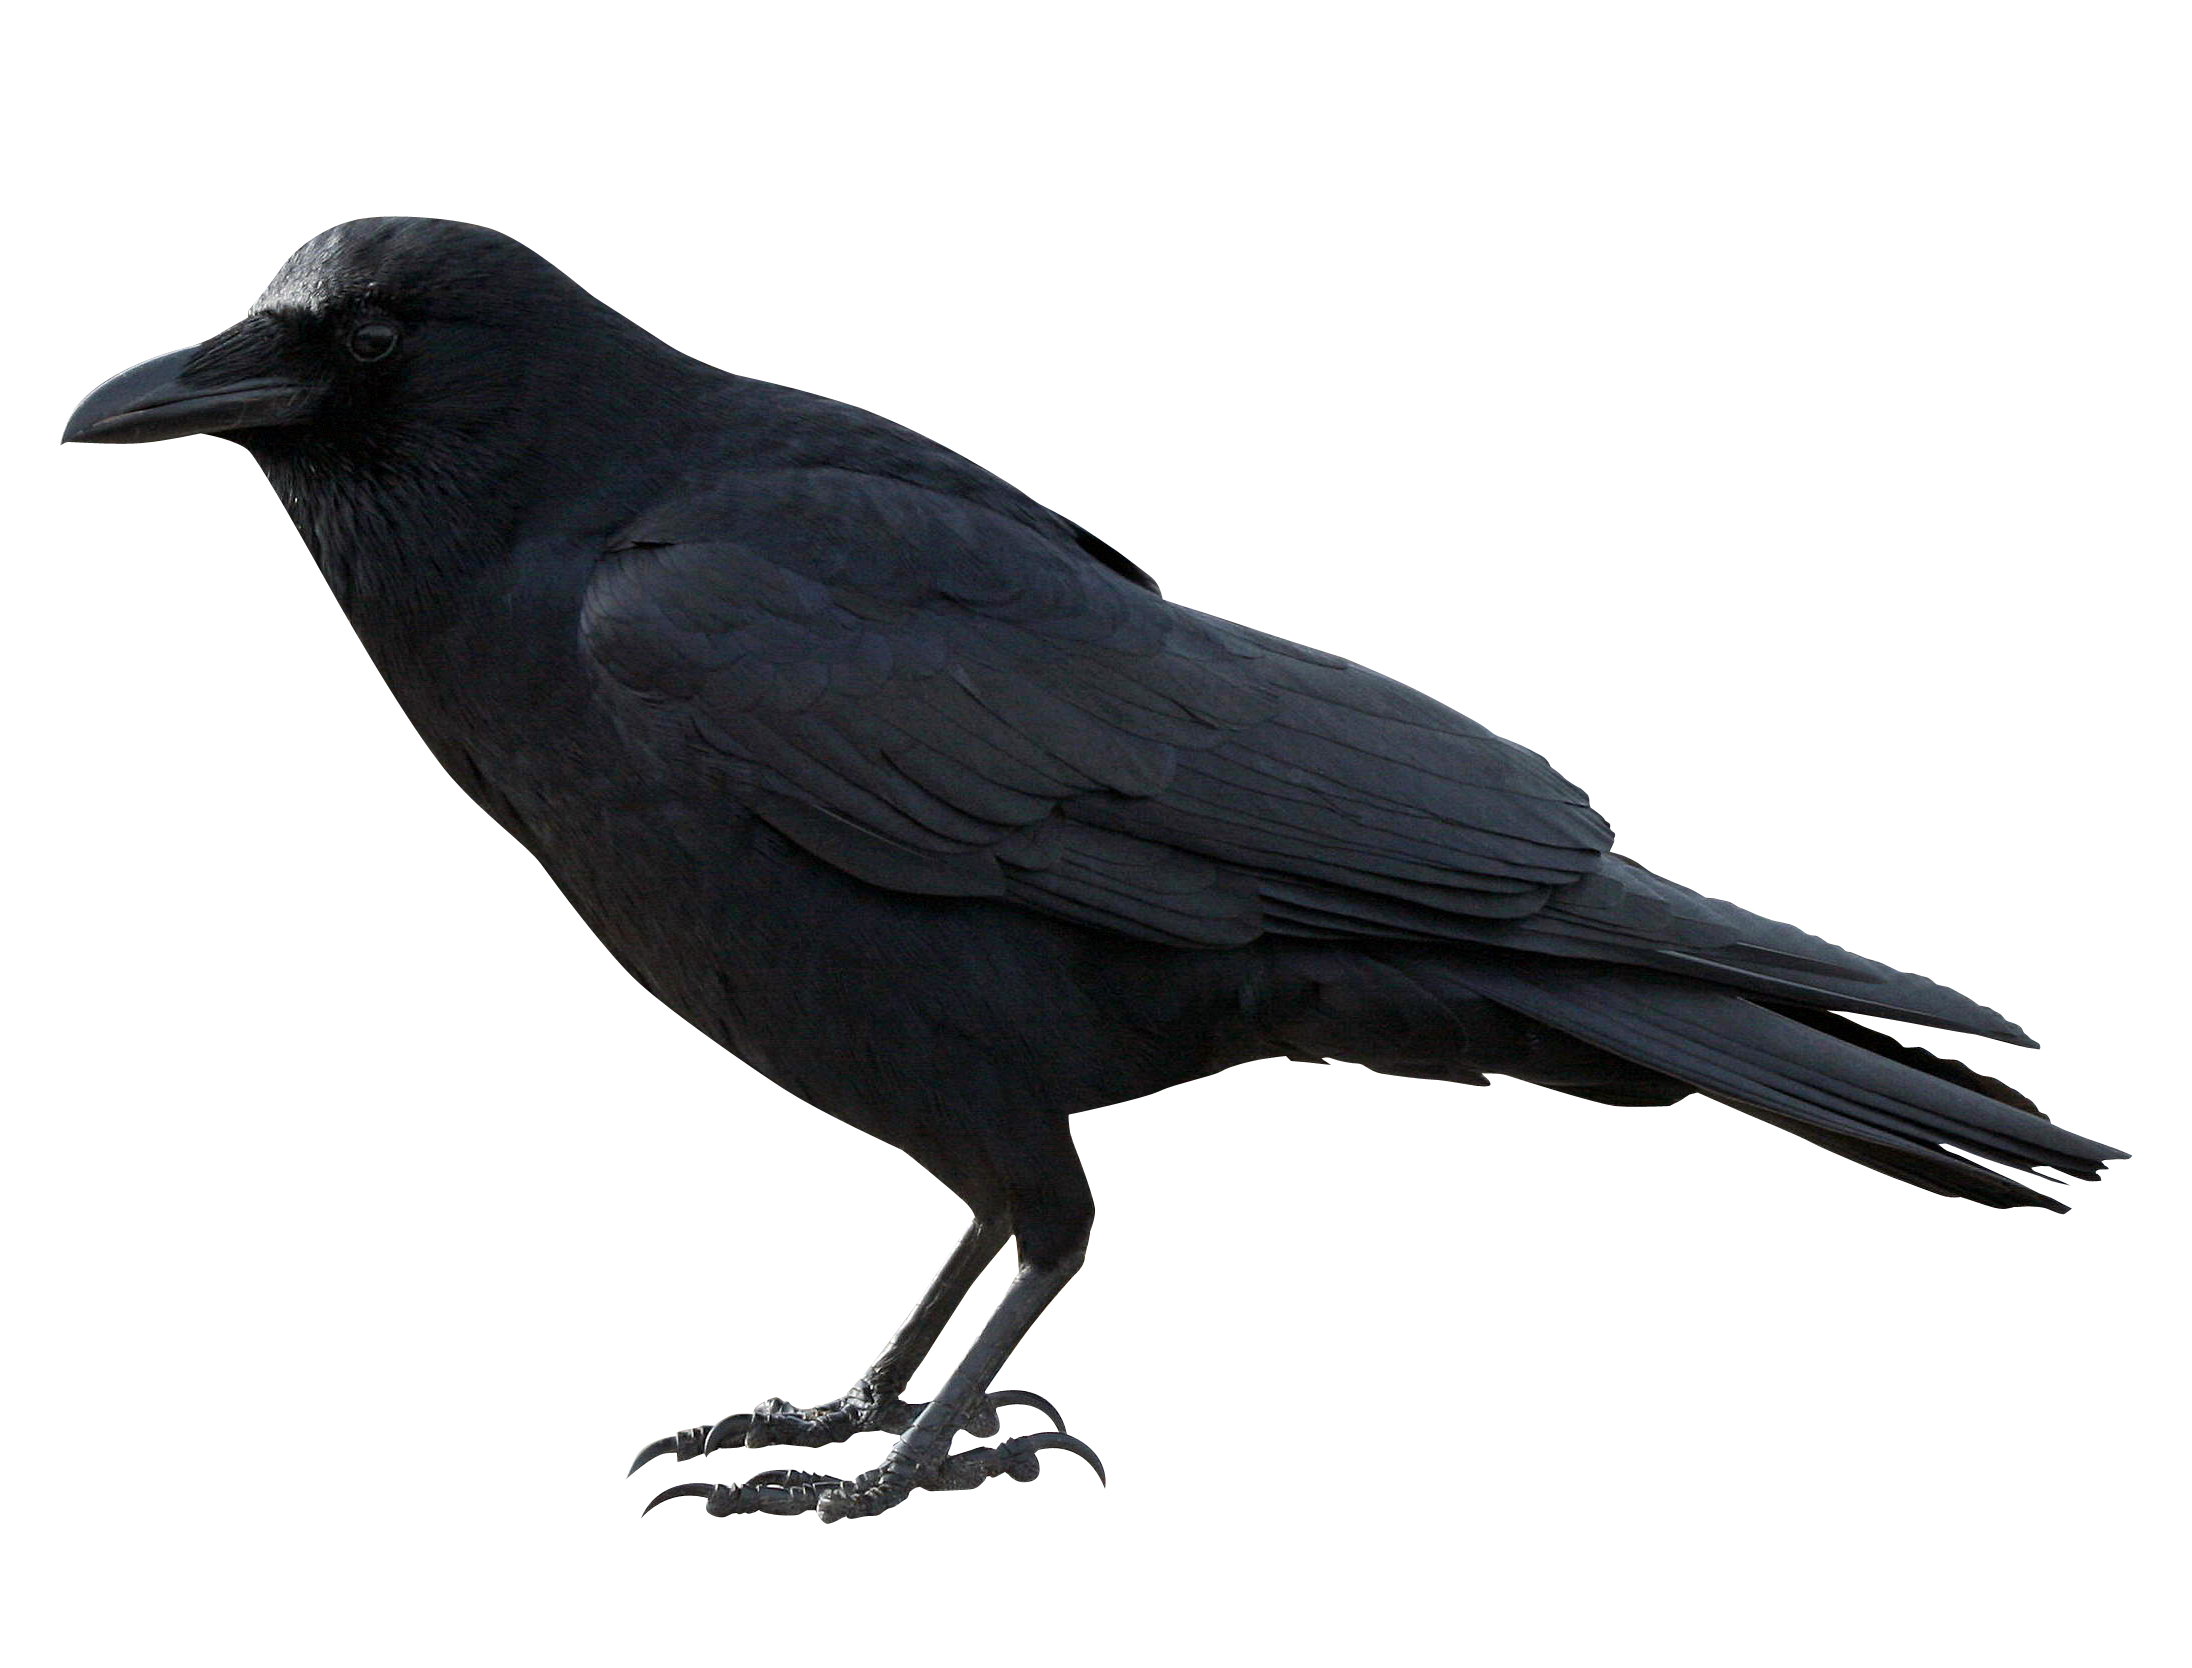 Crow Black Png Image Animals Gothic Aesthetic Crow